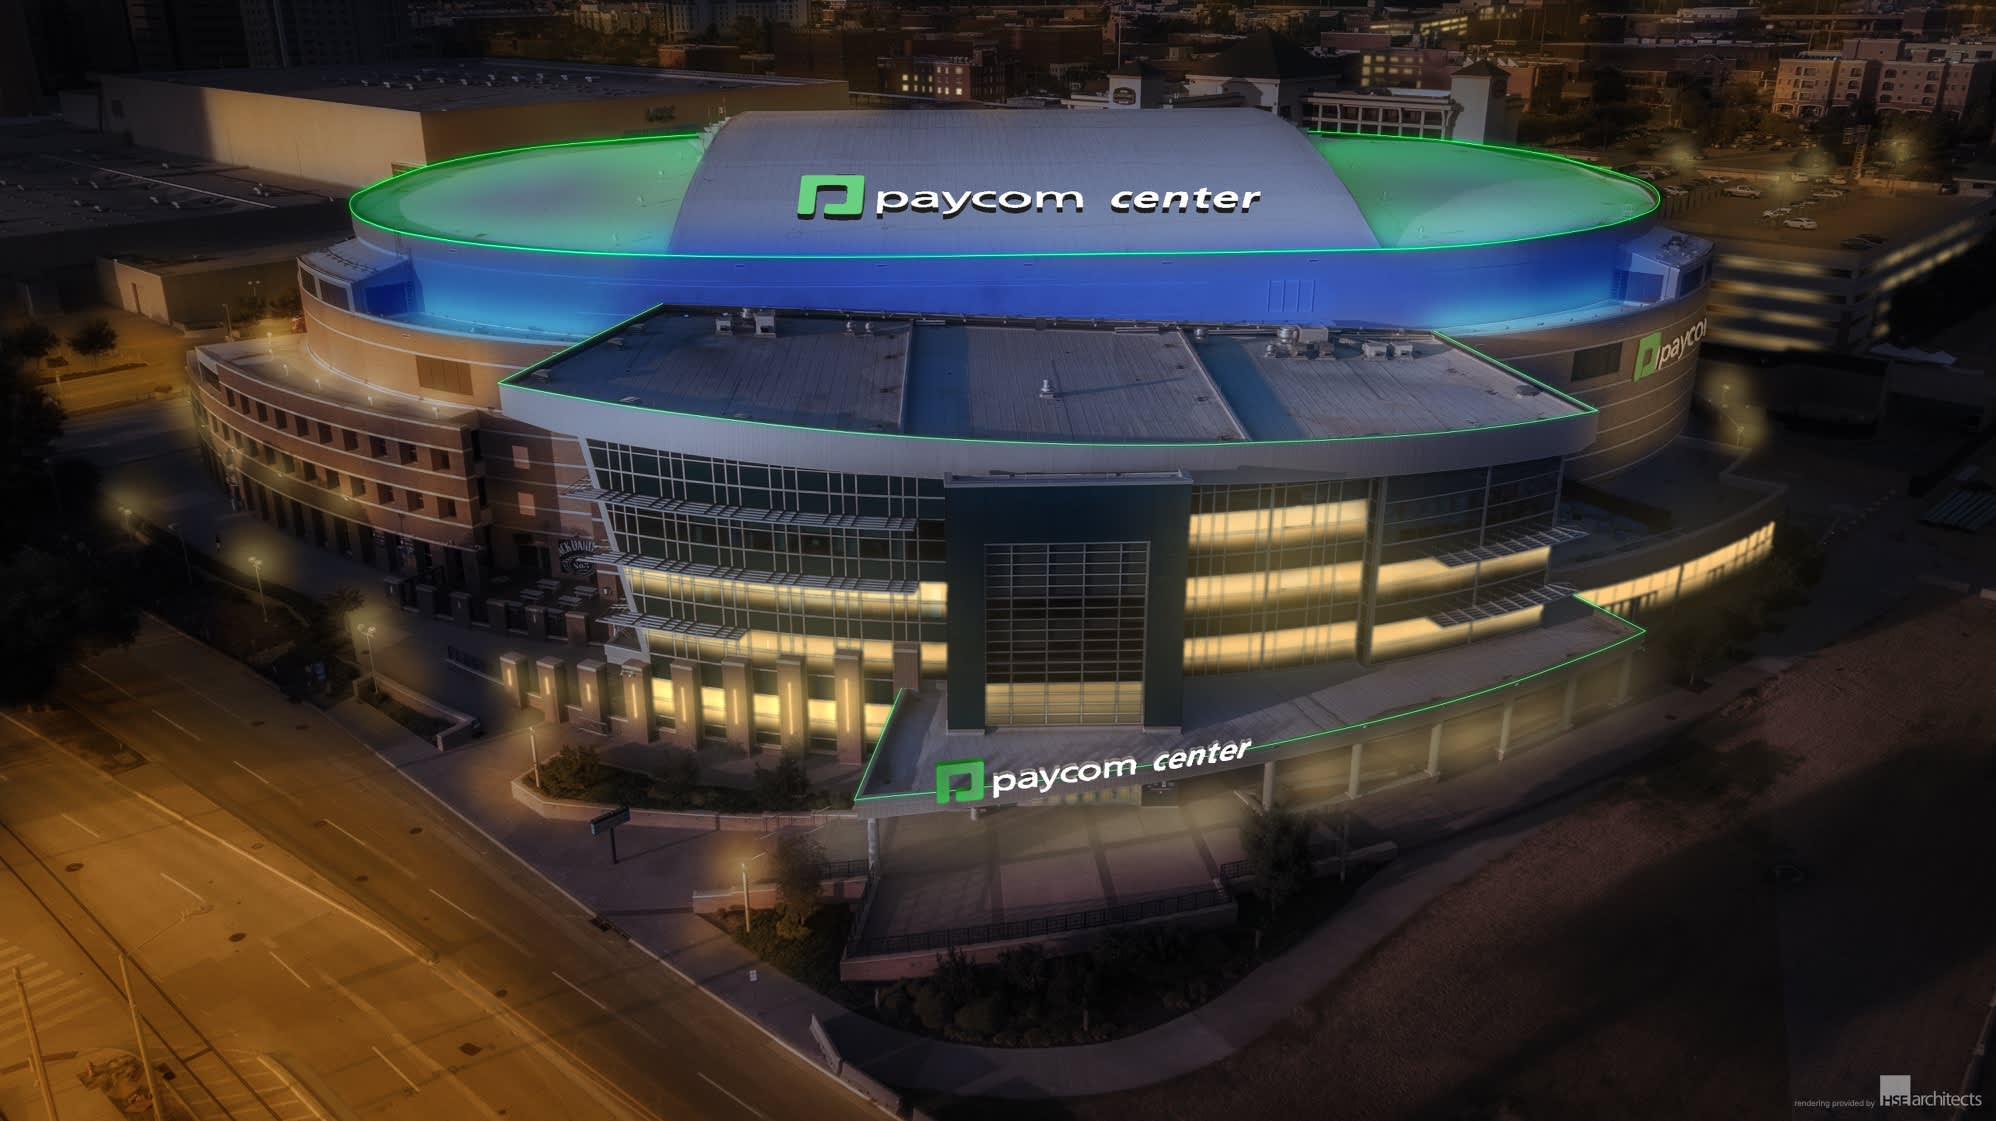 NBA's Oklahoma City Thunder arena will be called Paycom Center in 15-year deal